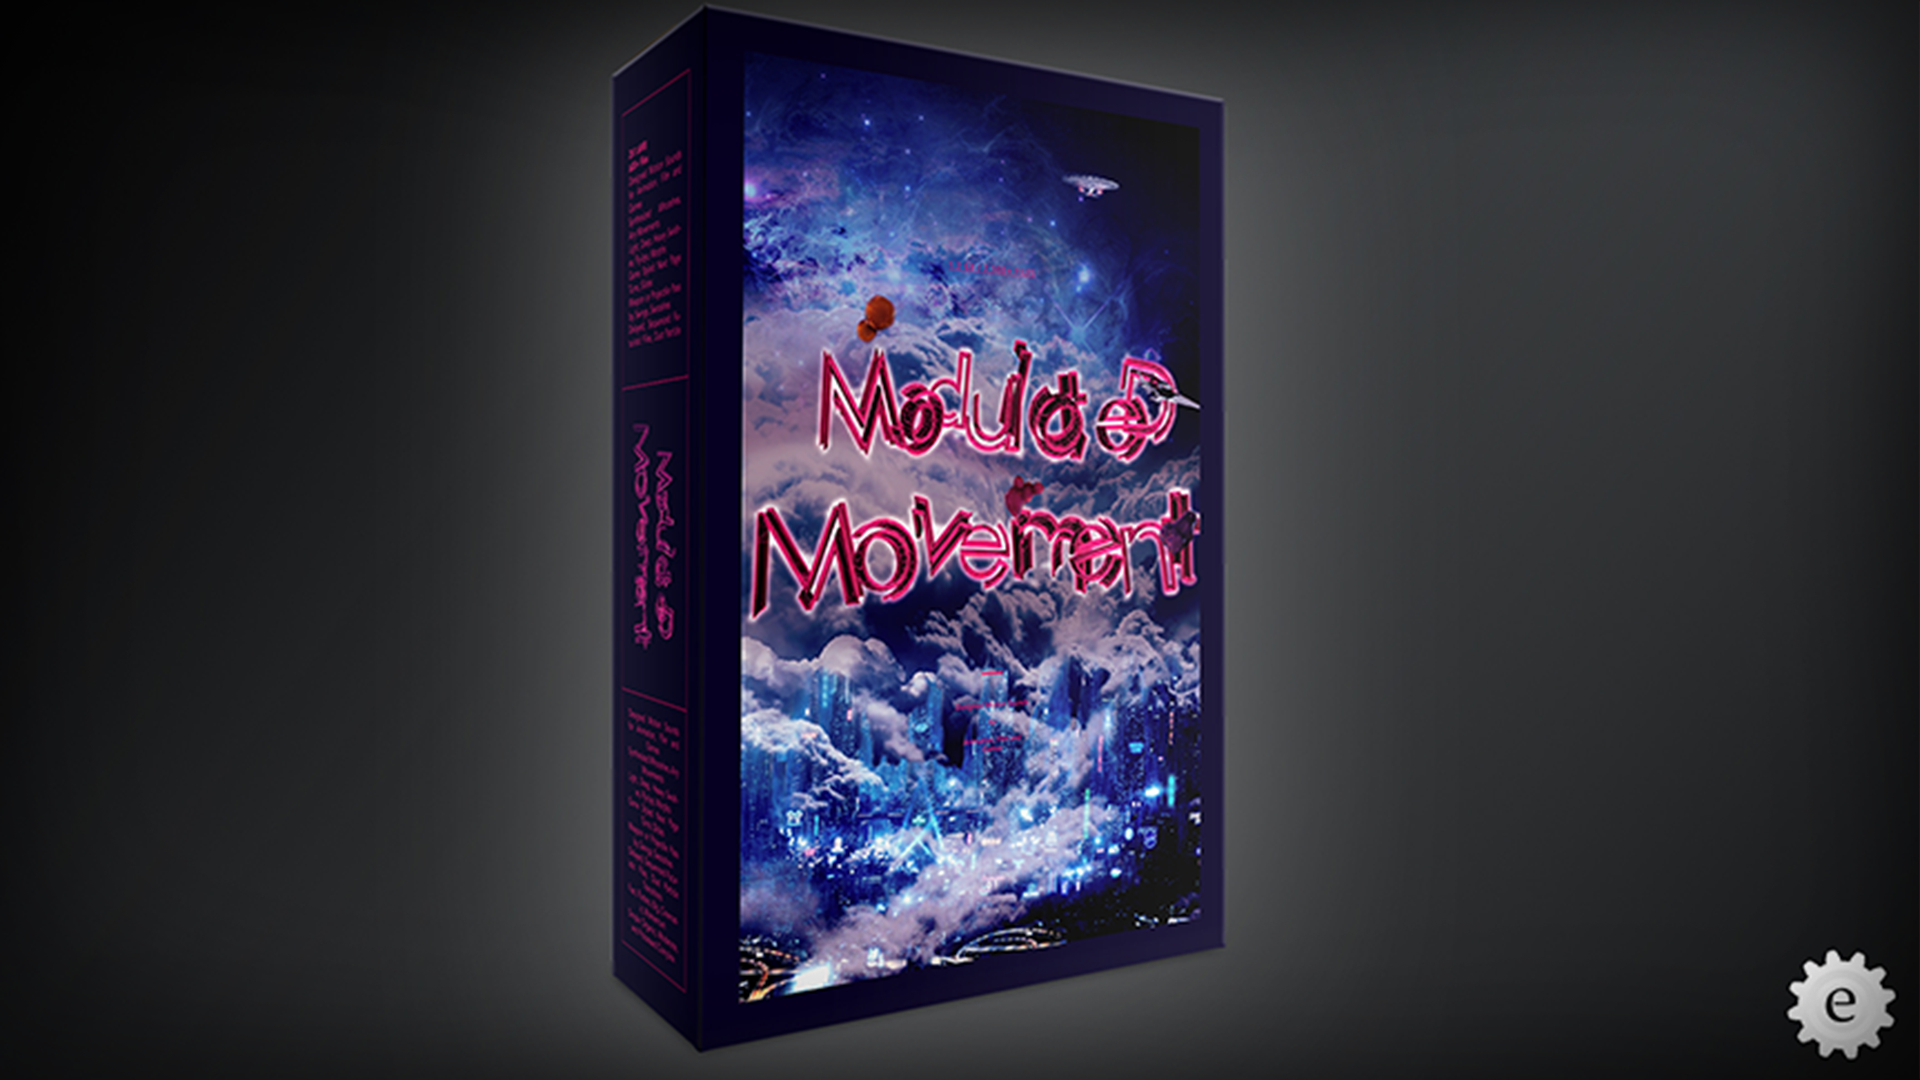 Modulated Movement by ESM